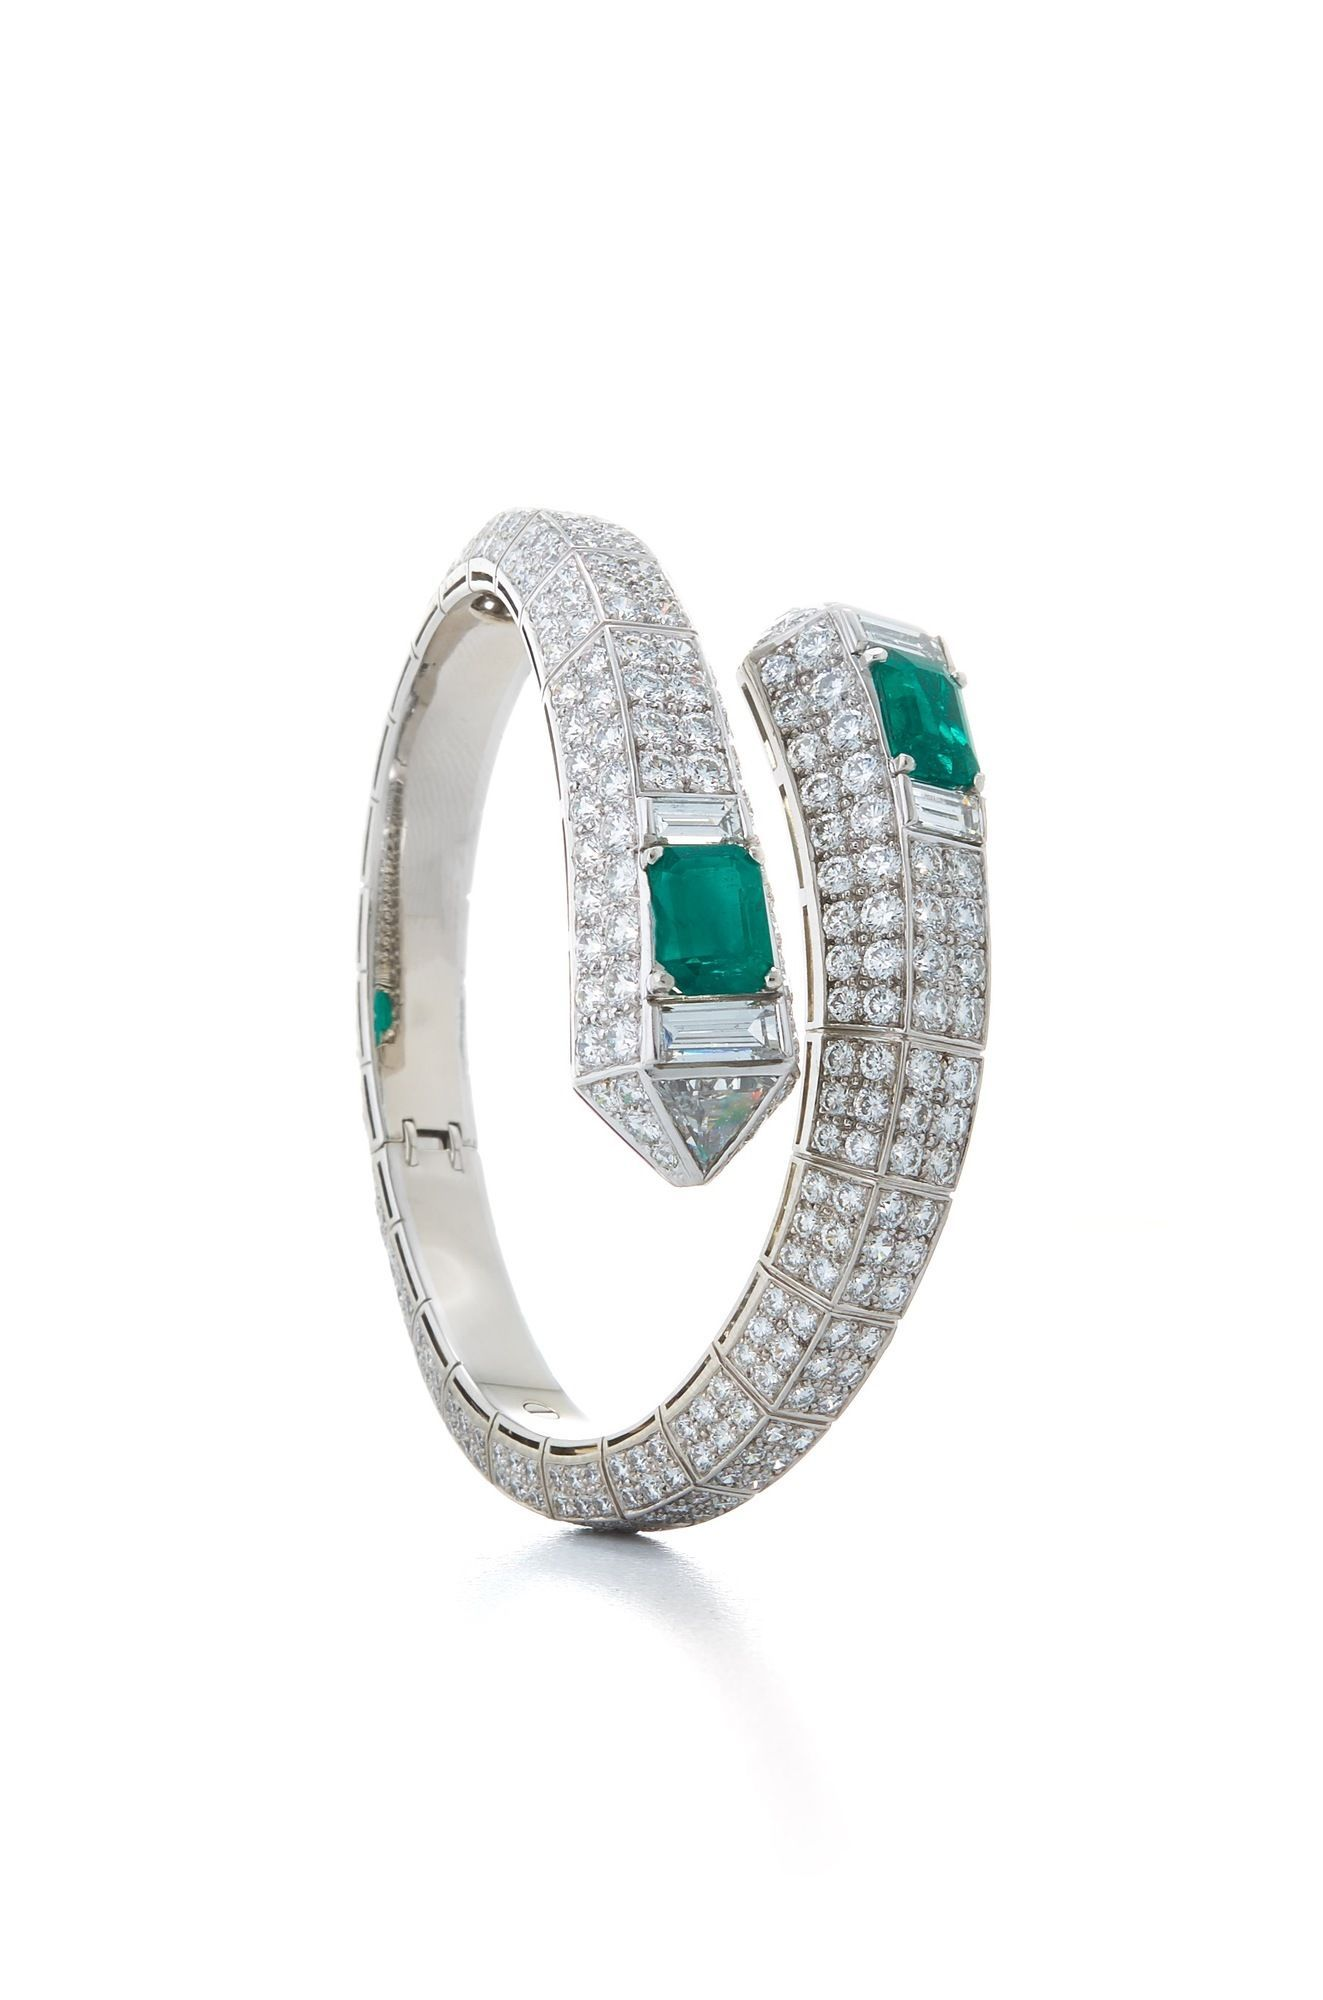 on ring baguette a diamond octagonal step weighing an tiered cut pin and emerald of centring carats triple to border brilliant